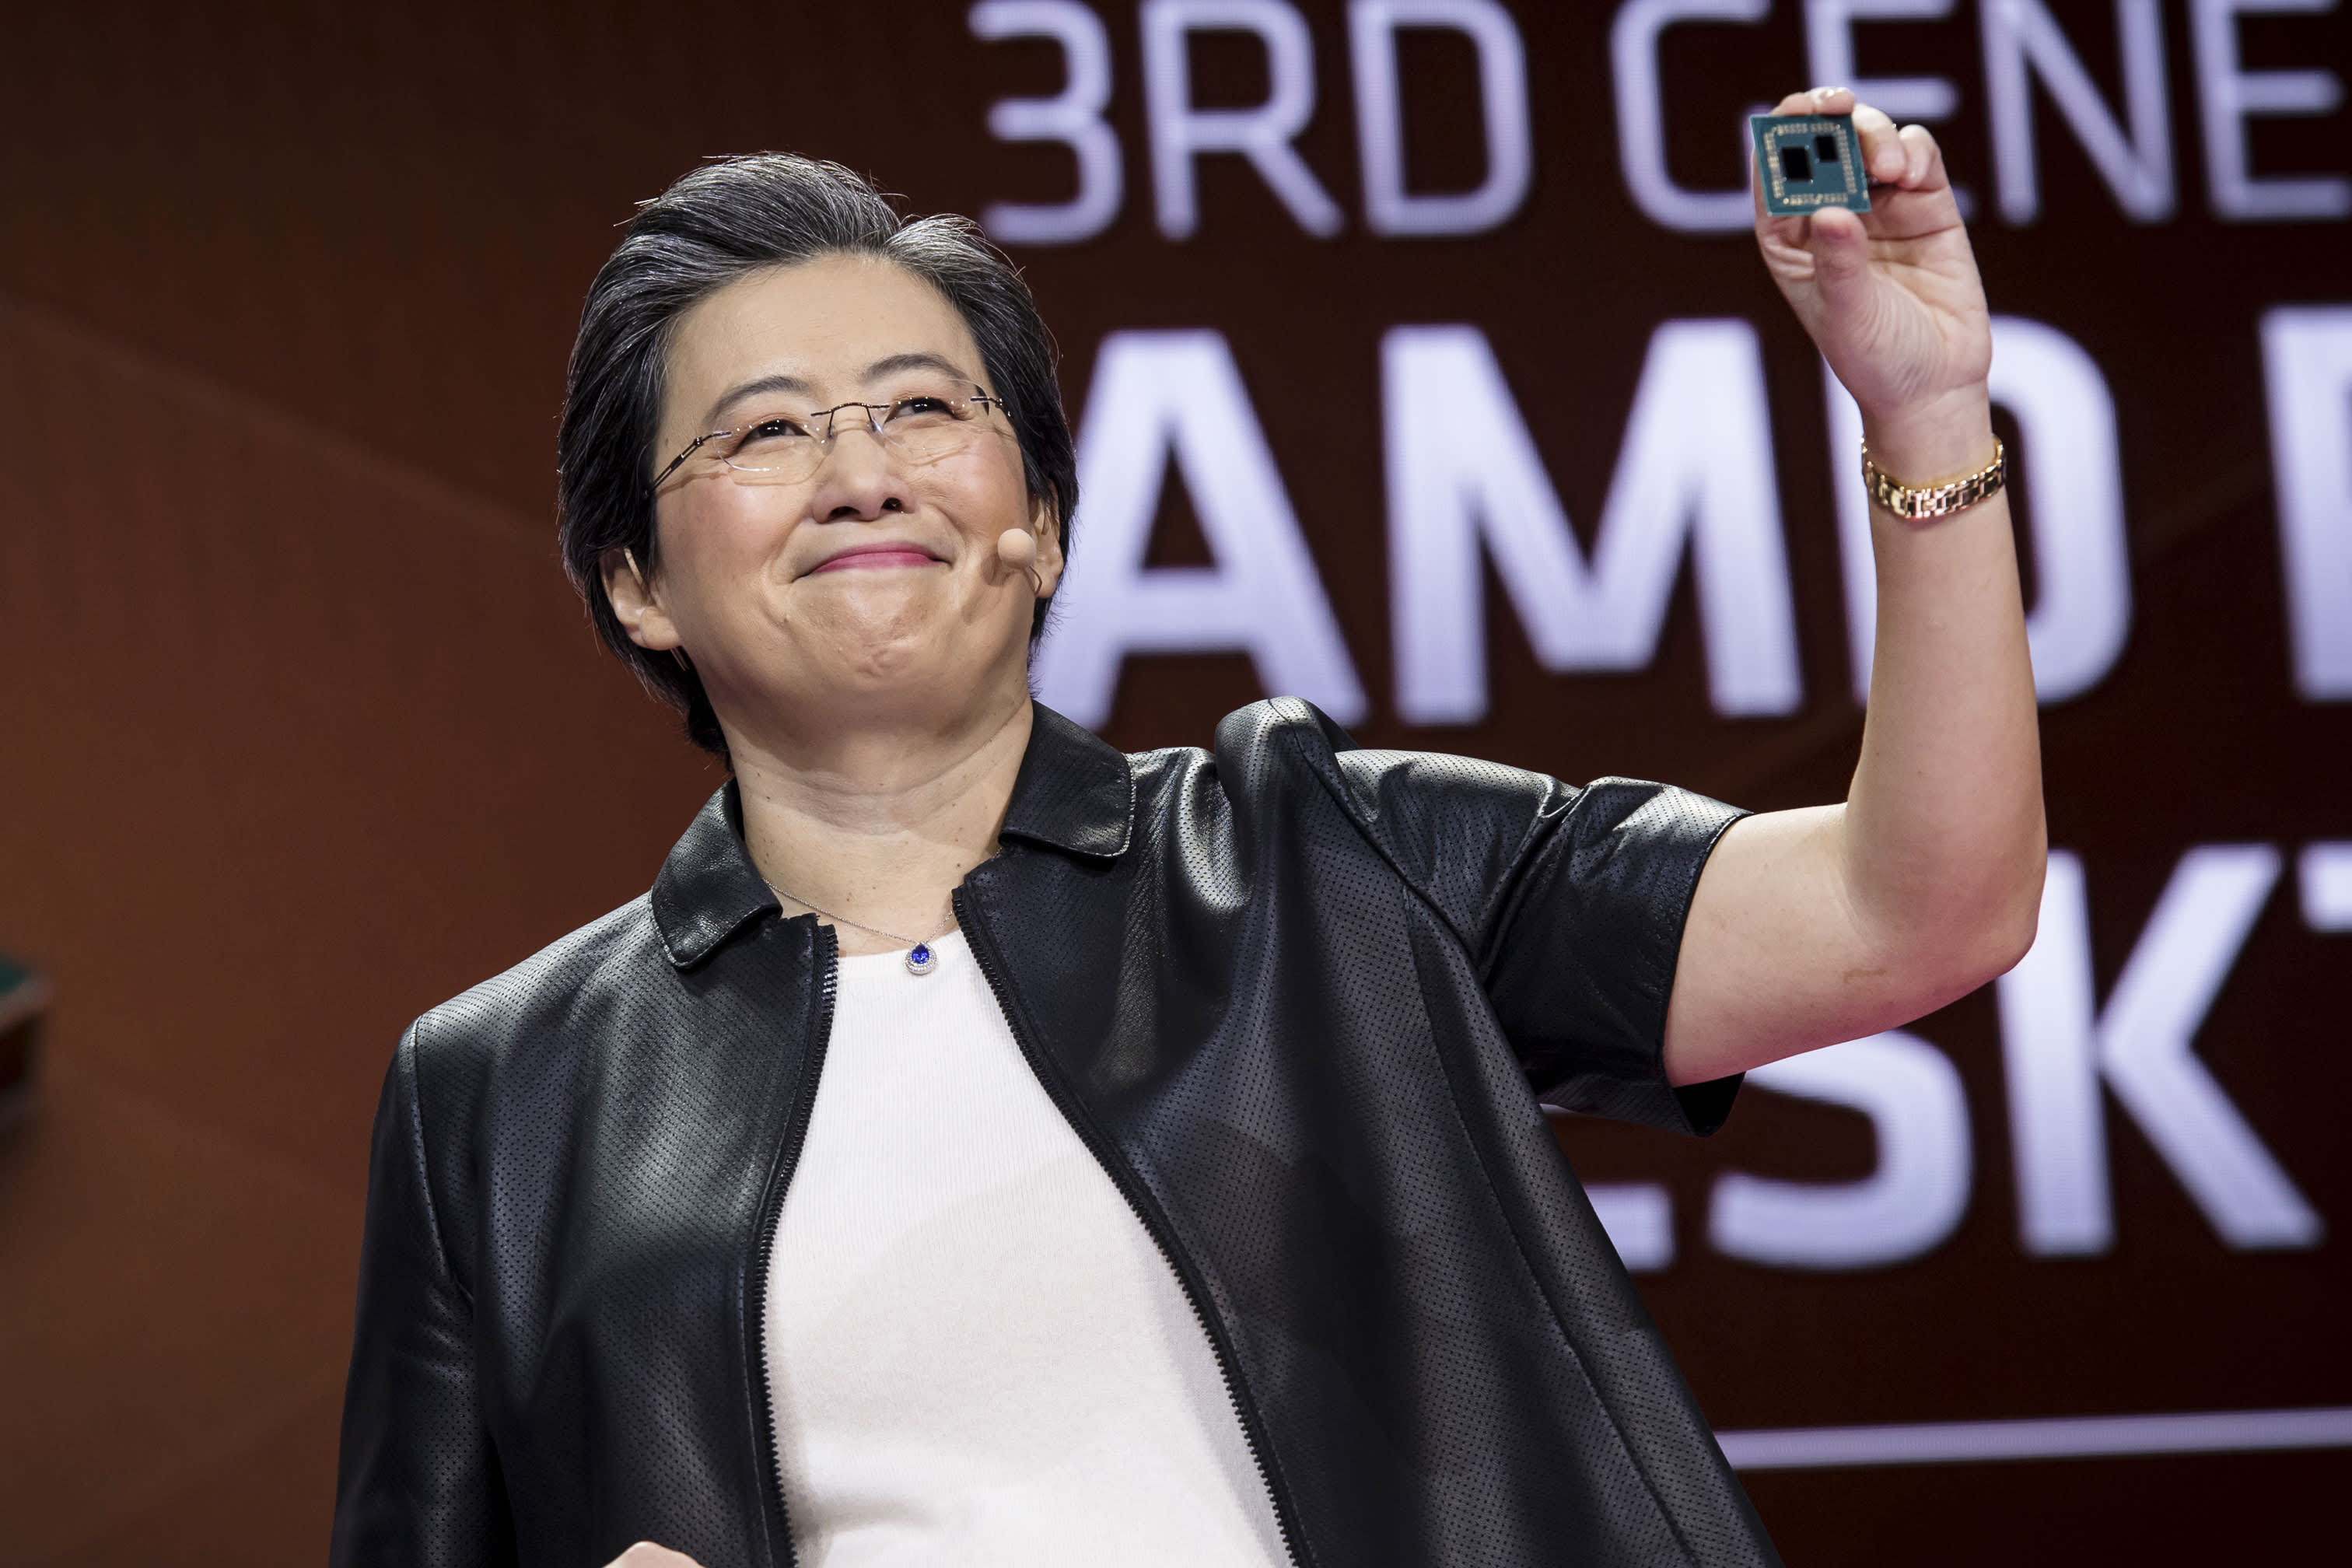 Hottest stock of 2019 AMD is on the move again after upgrade